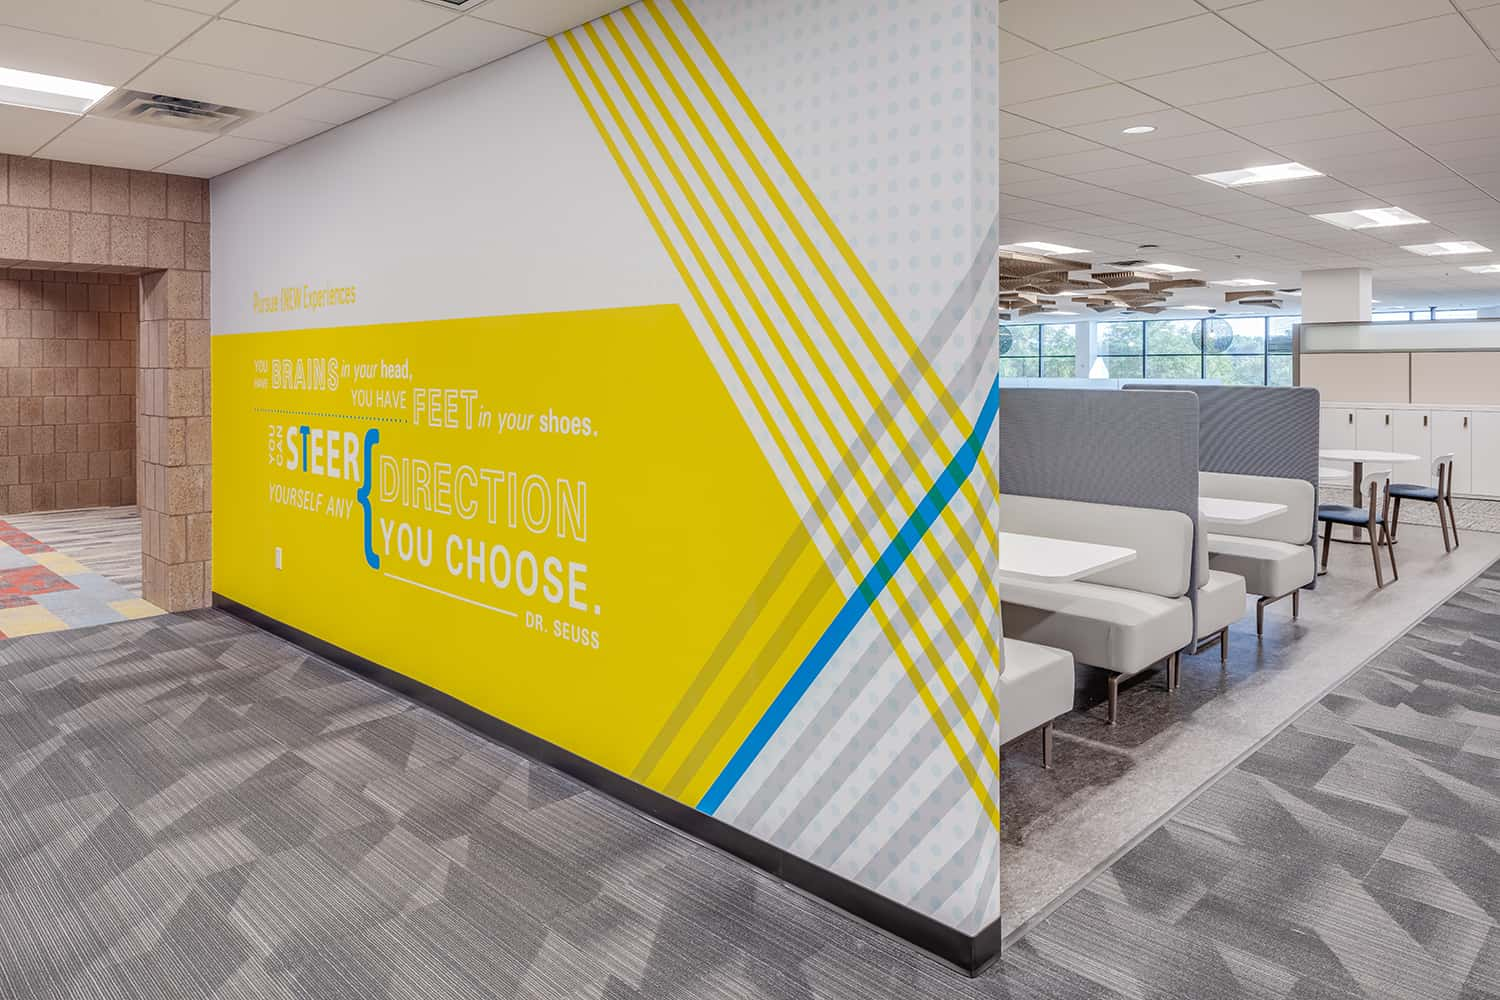 Environmental graphic wall with yellow branding and inspiring message.